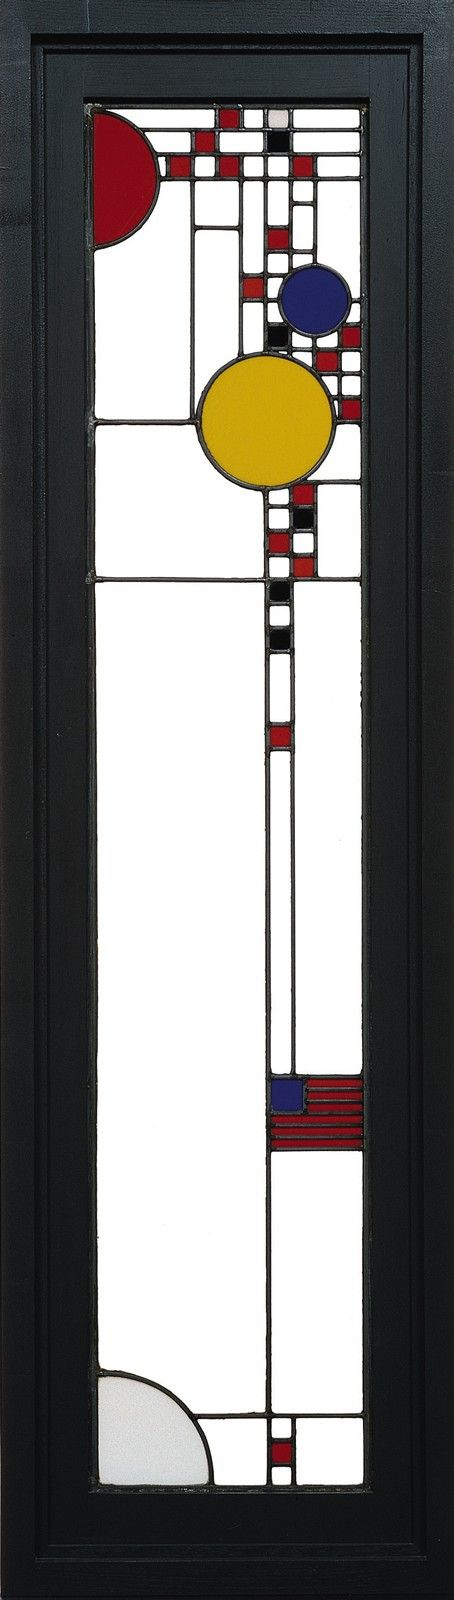 Frank Lloyd Wright (1867-1959) - Leaded Glass Window. Coloured and Translucent White Glass with Zinc Came and Wood Frame. Designed for the Avery Coonley Playhouse, Coonley Residence, Riverside, Illinois. Executed by Linden Glass Company, Chicago, Illinois. Circa 1912. 154.8cm x 31.7cm.